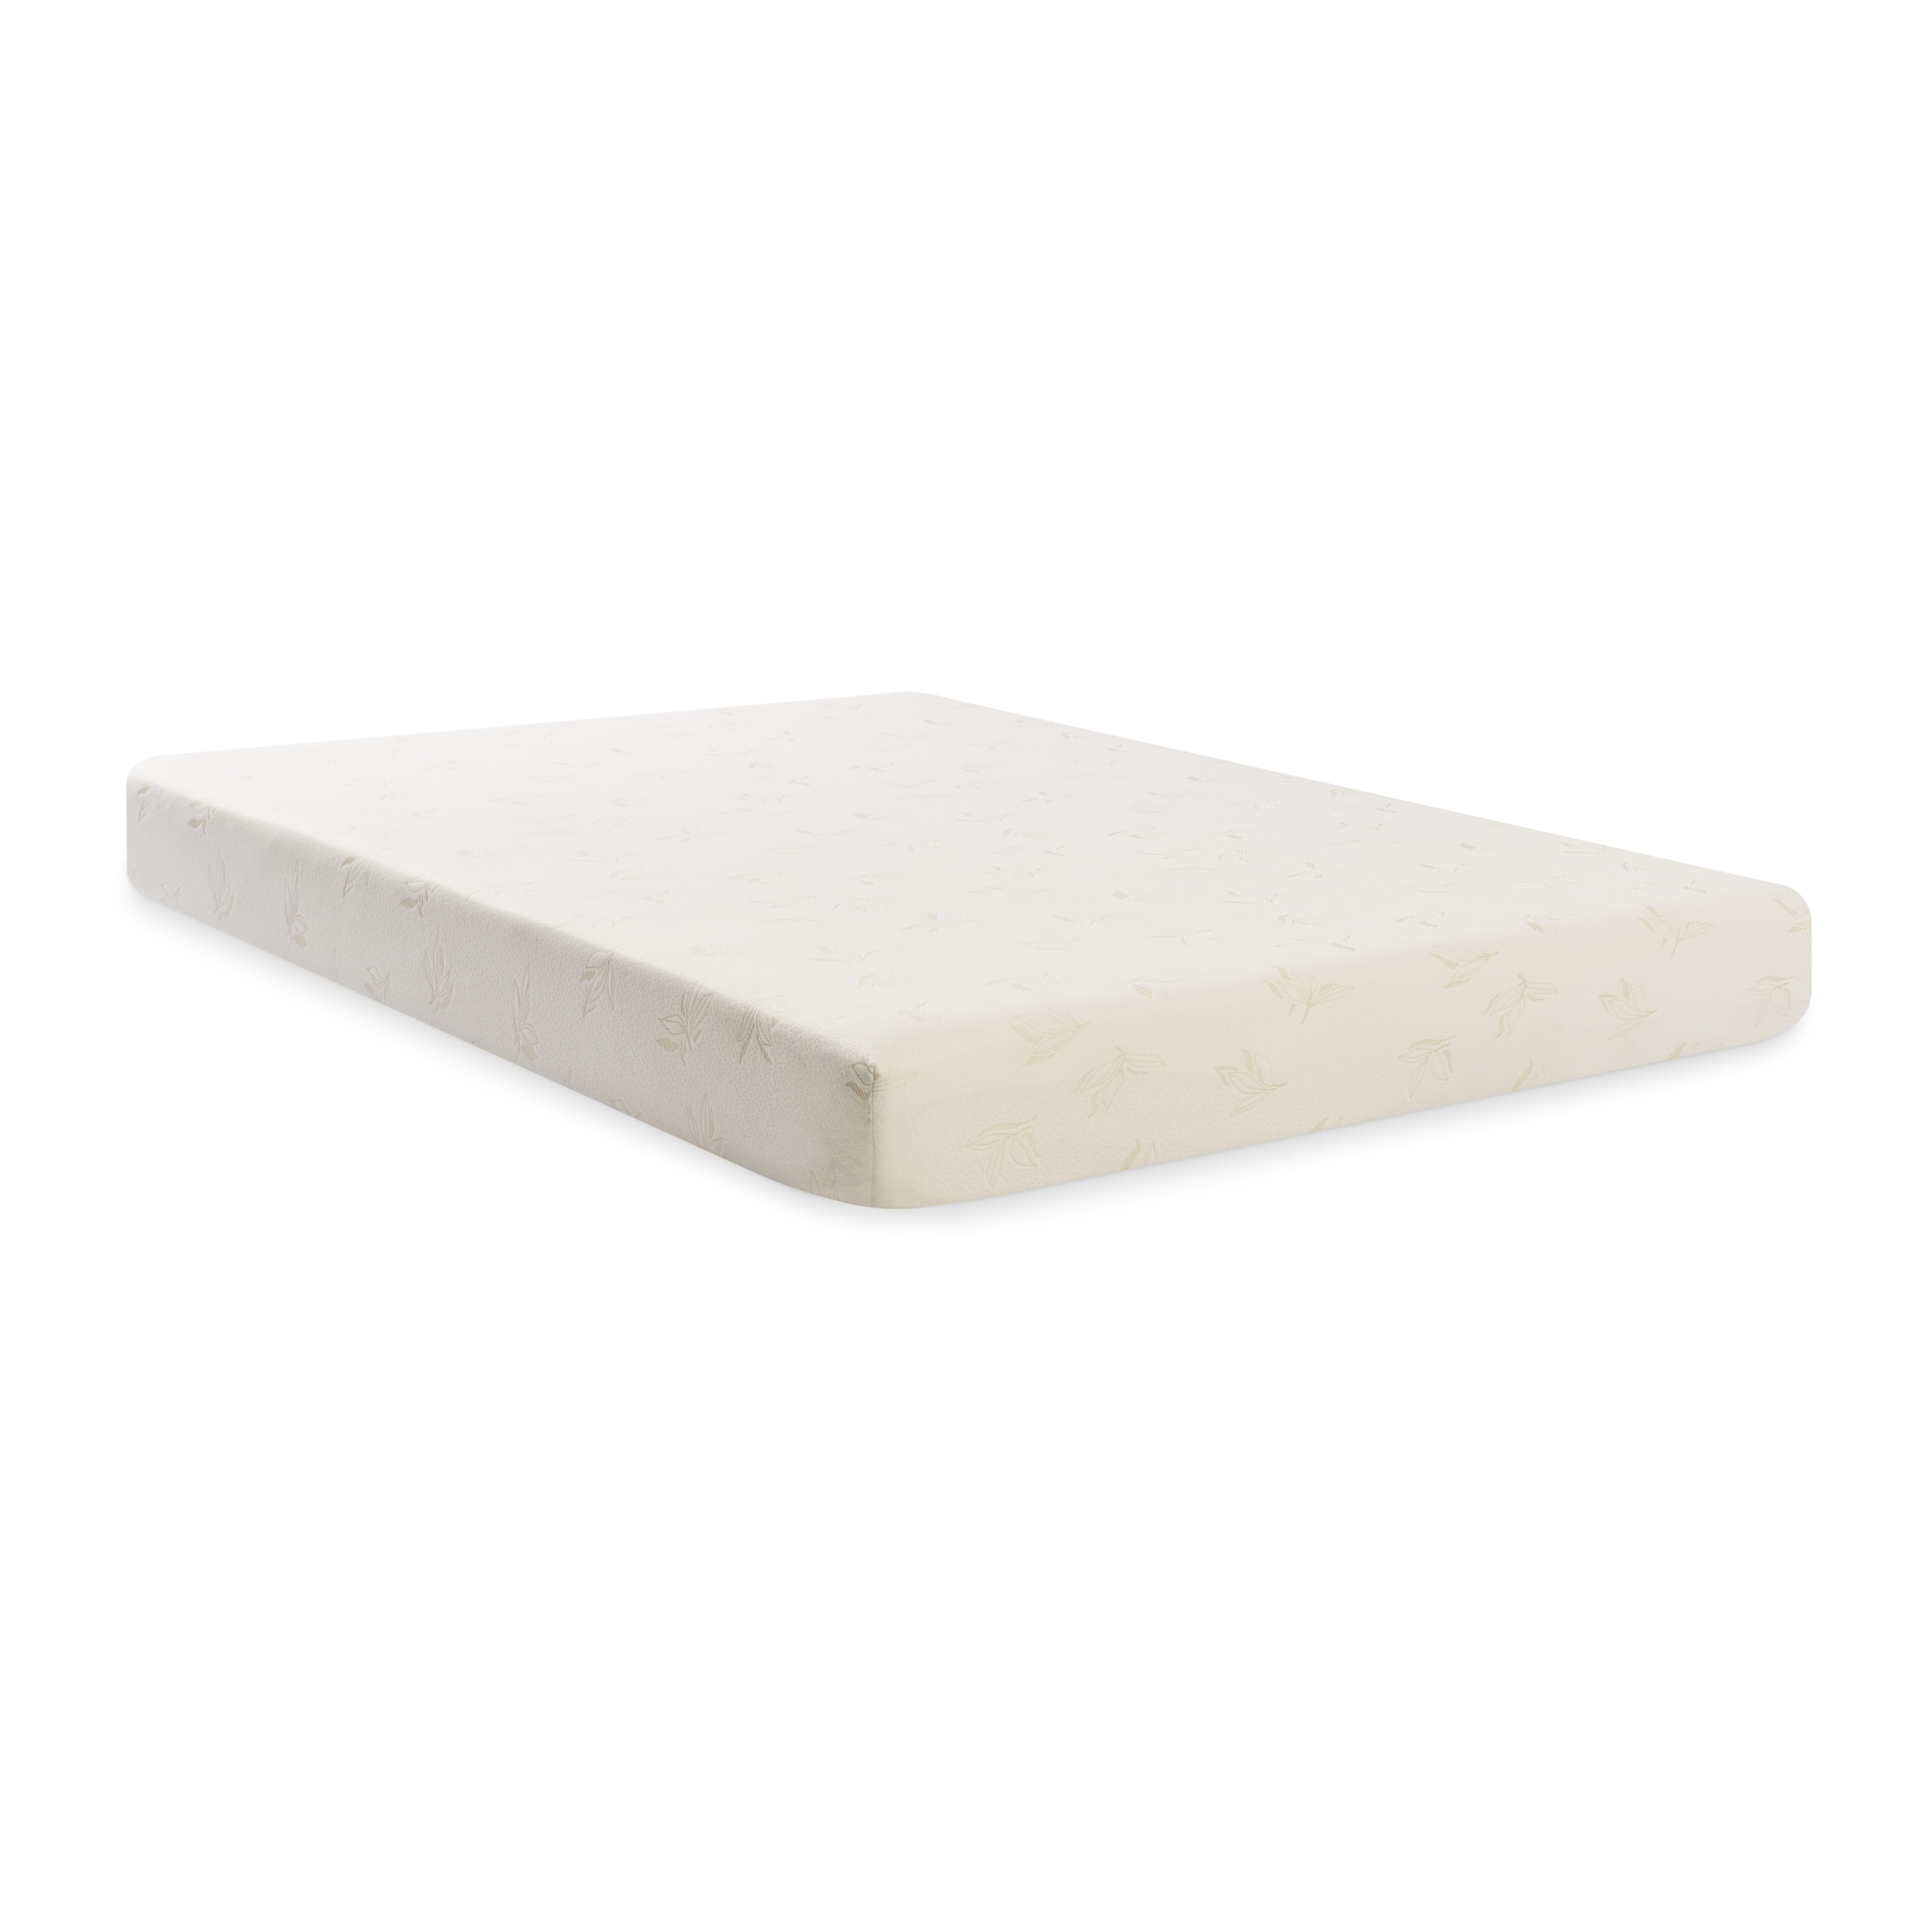 fort Dreams 8 inch Twin size Memory Foam Mattress Free